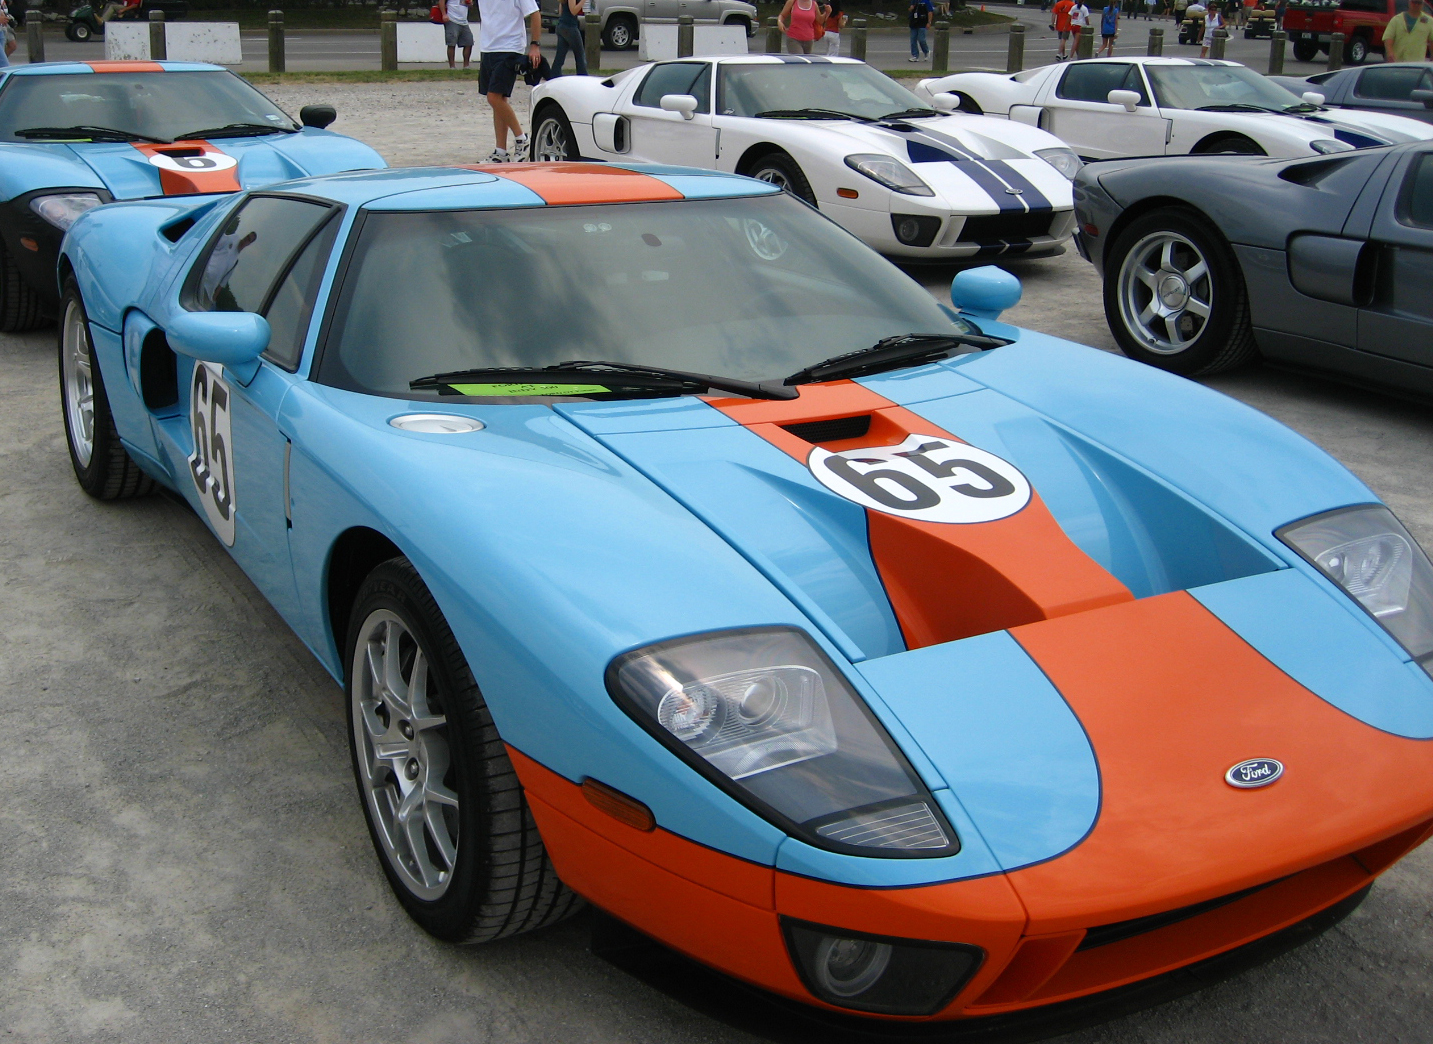 2019 Gt 500 >> File:Ford GT Heritage.jpg - Wikimedia Commons